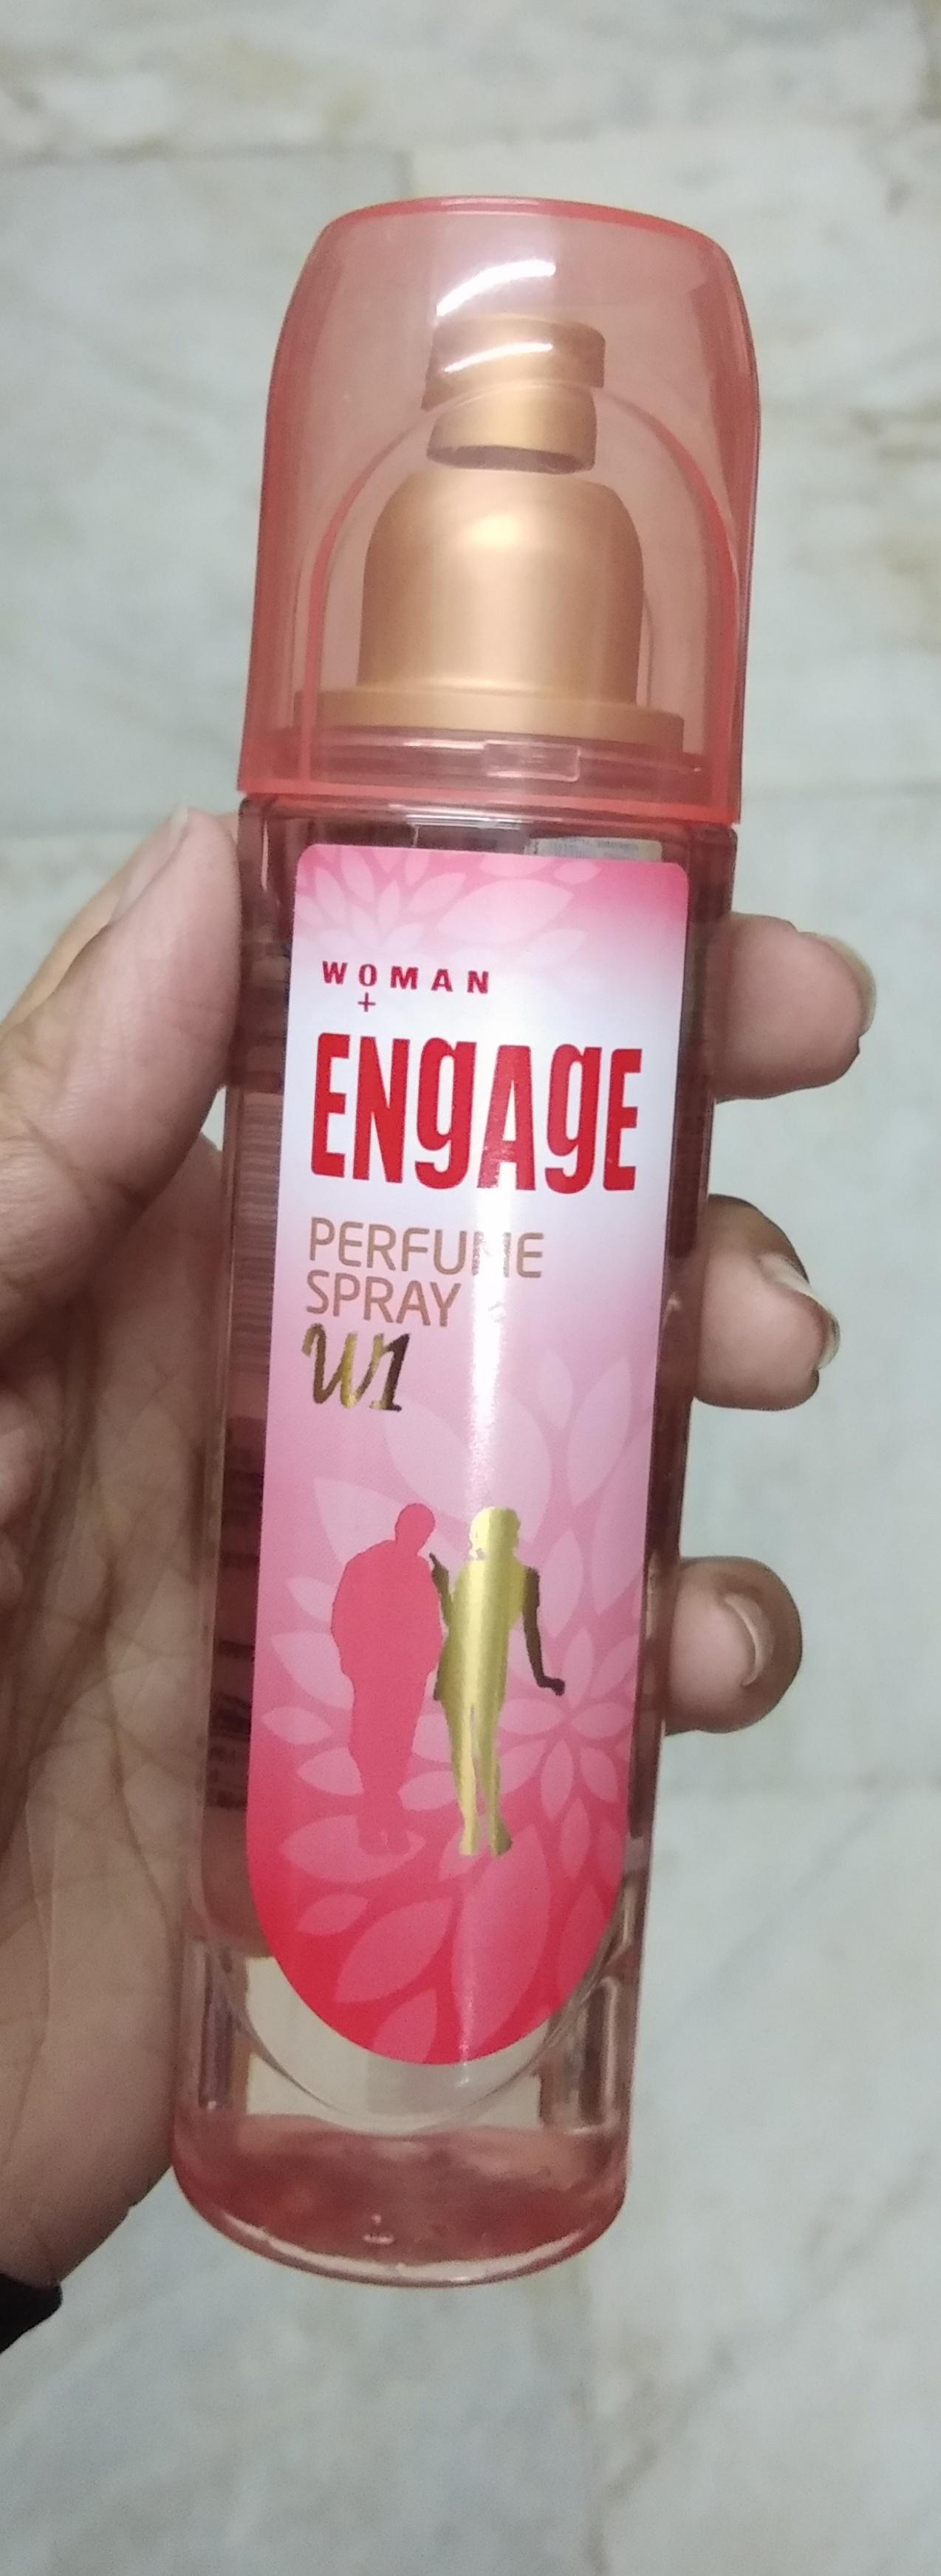 Engage W1 Perfume Spray – For Women-Amazing fragrance at affordable price-By Nasreen-1